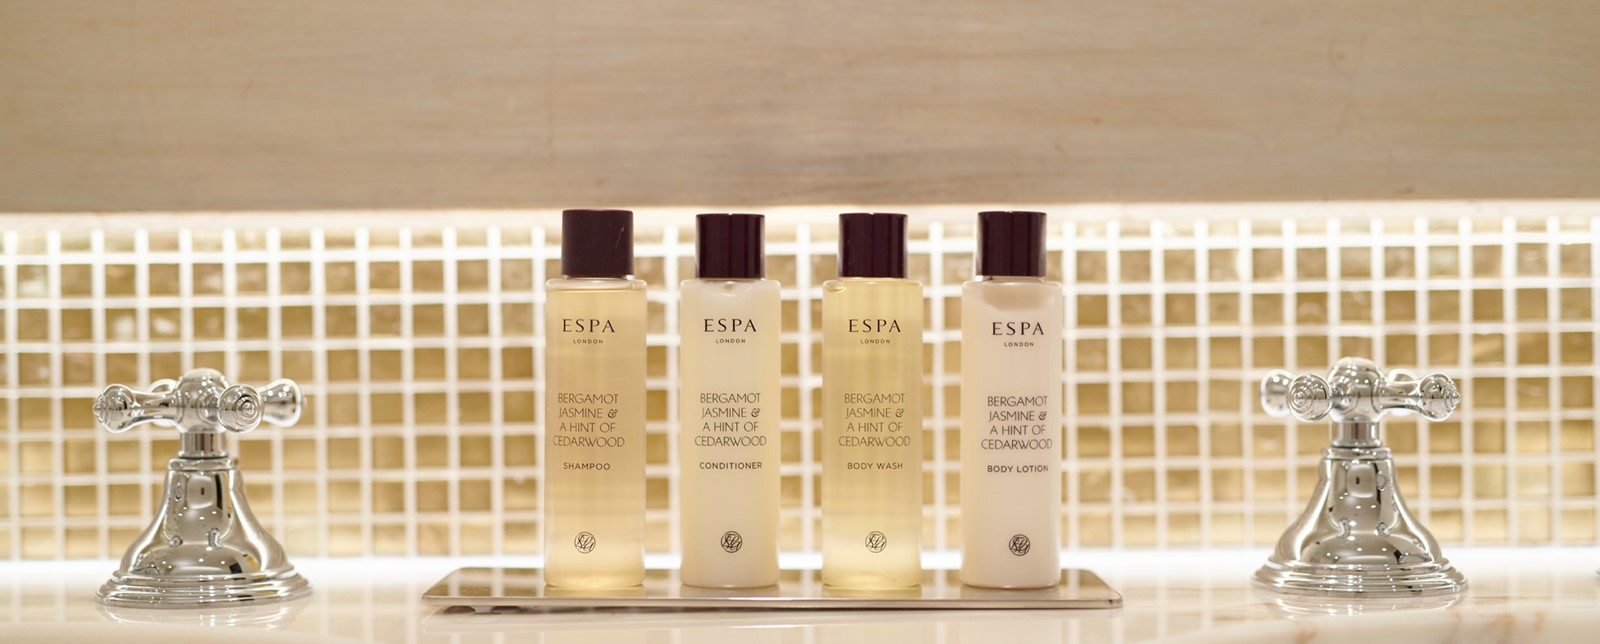 corinthia lisbon deluxe queen bathroom products